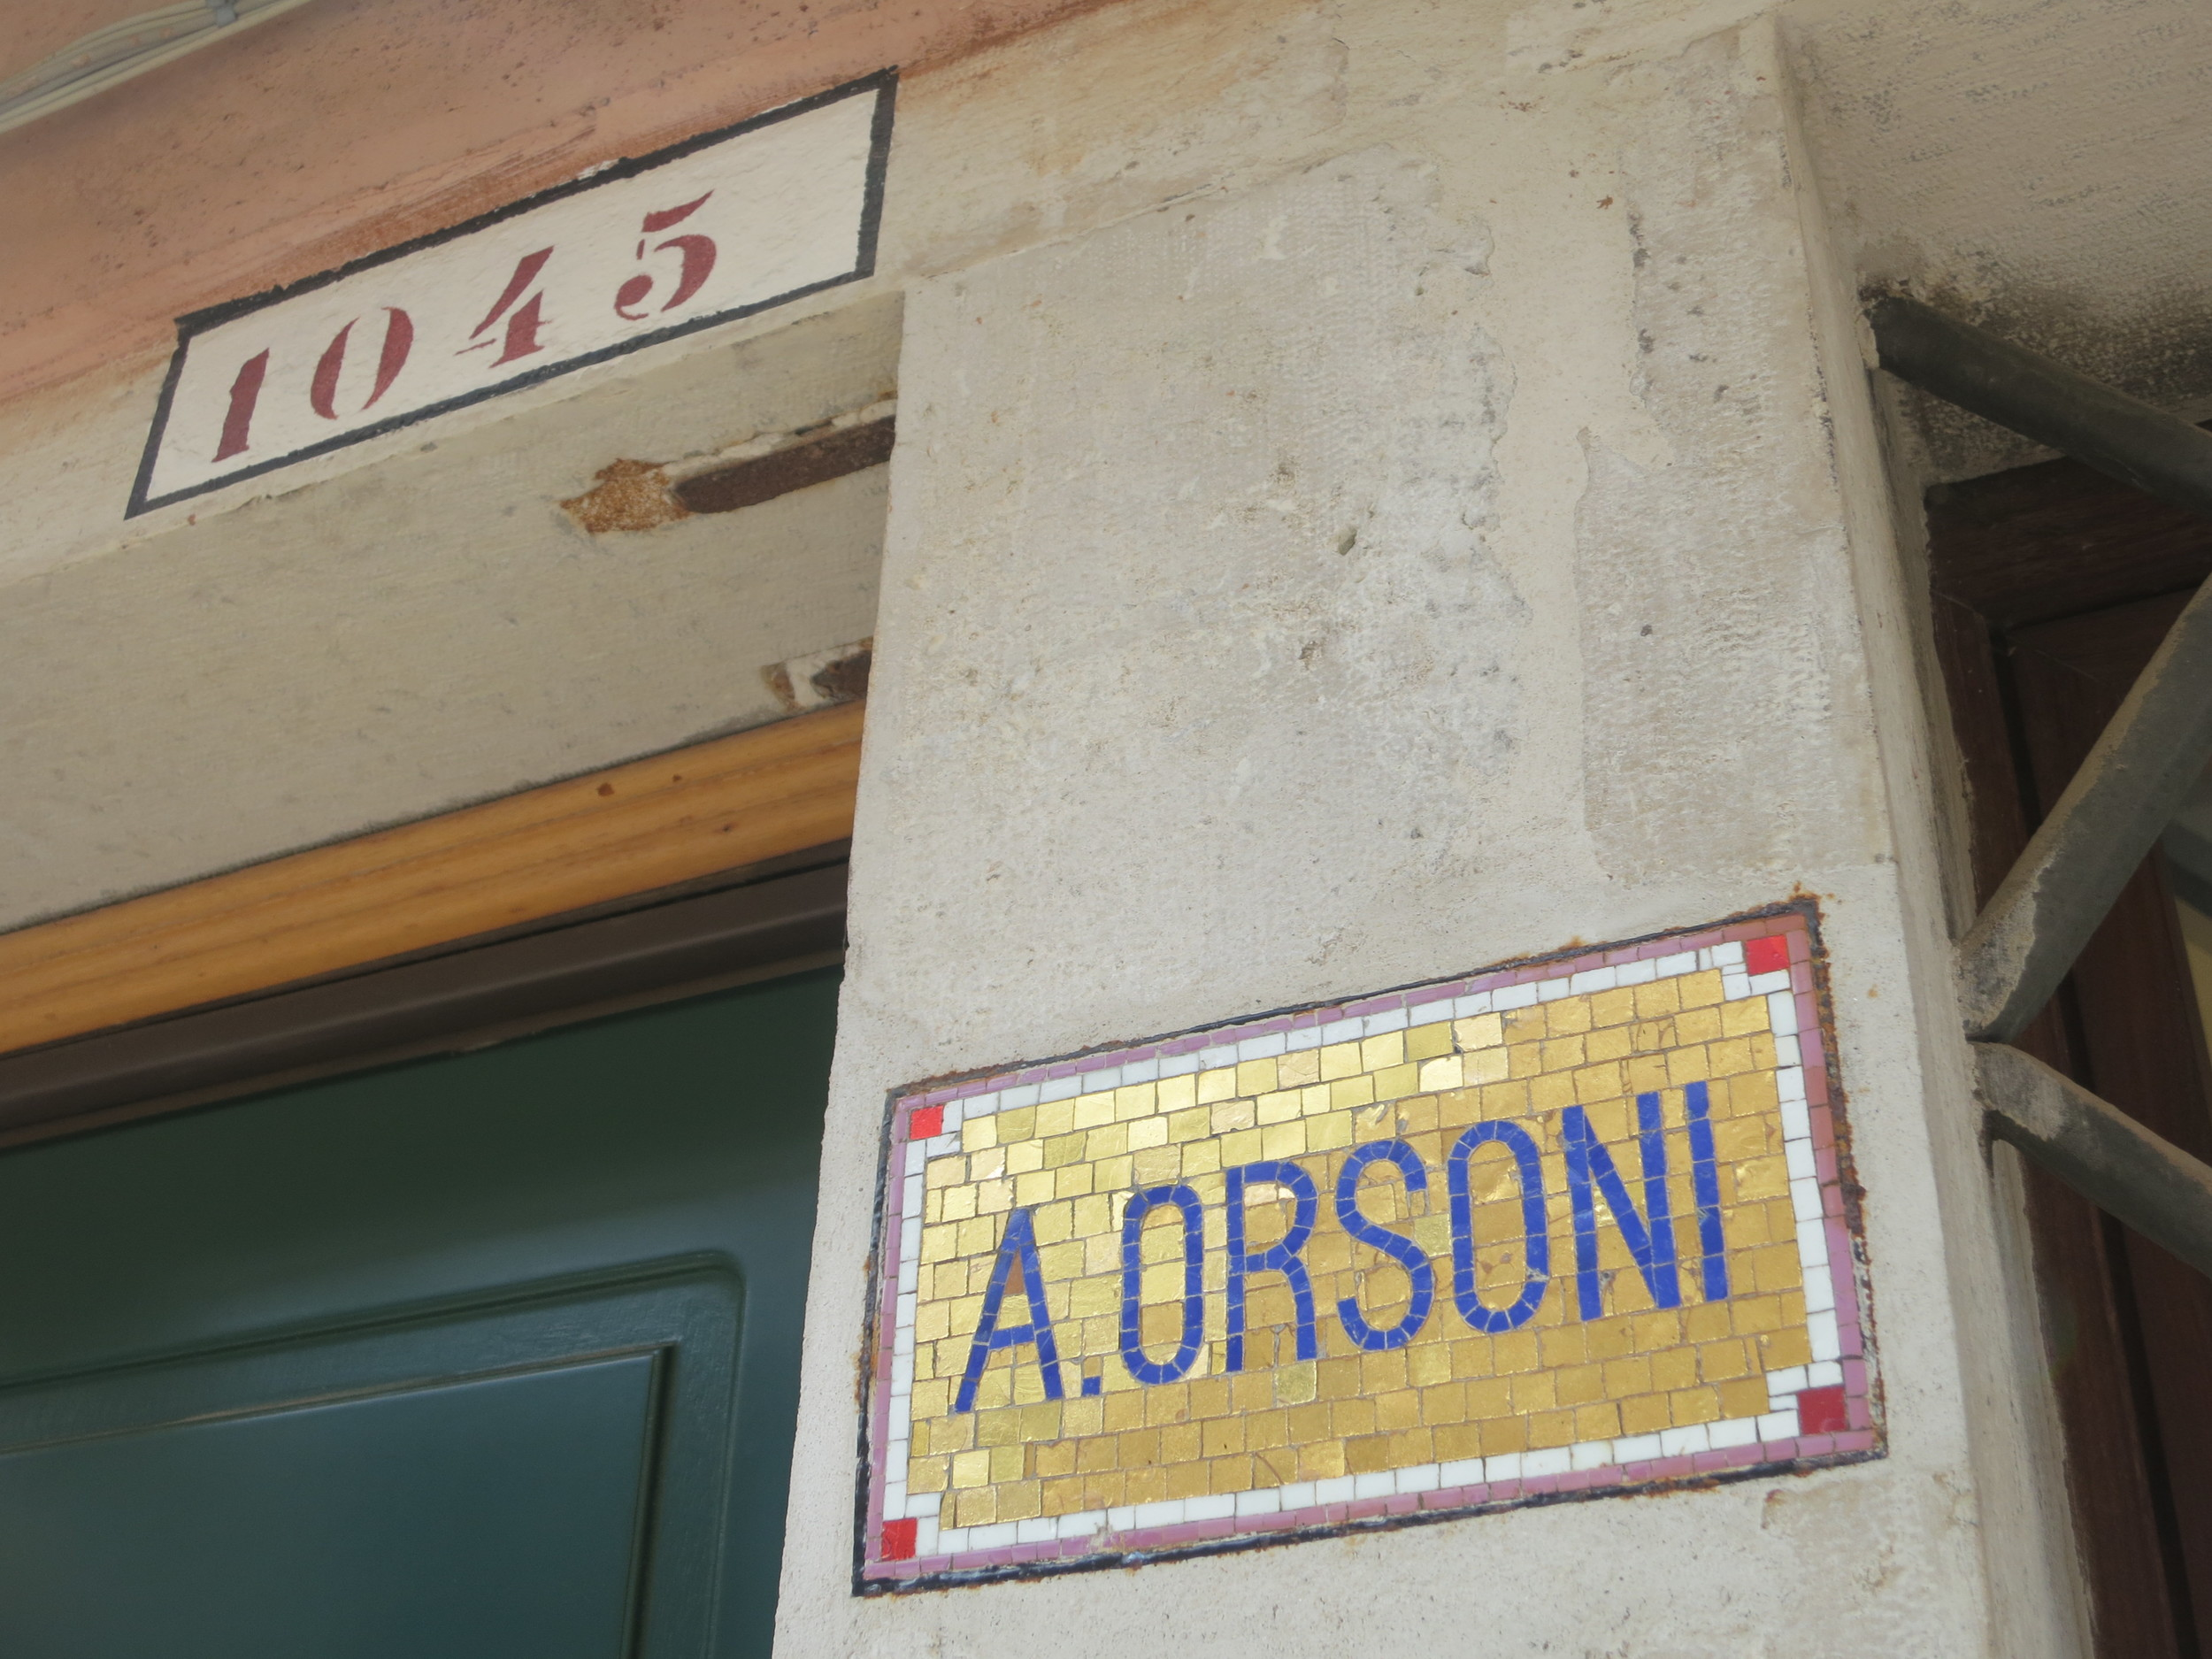 Look for the green door: #1045Home of Orsoni World Headquarters and the Orsoni School of Mosaic